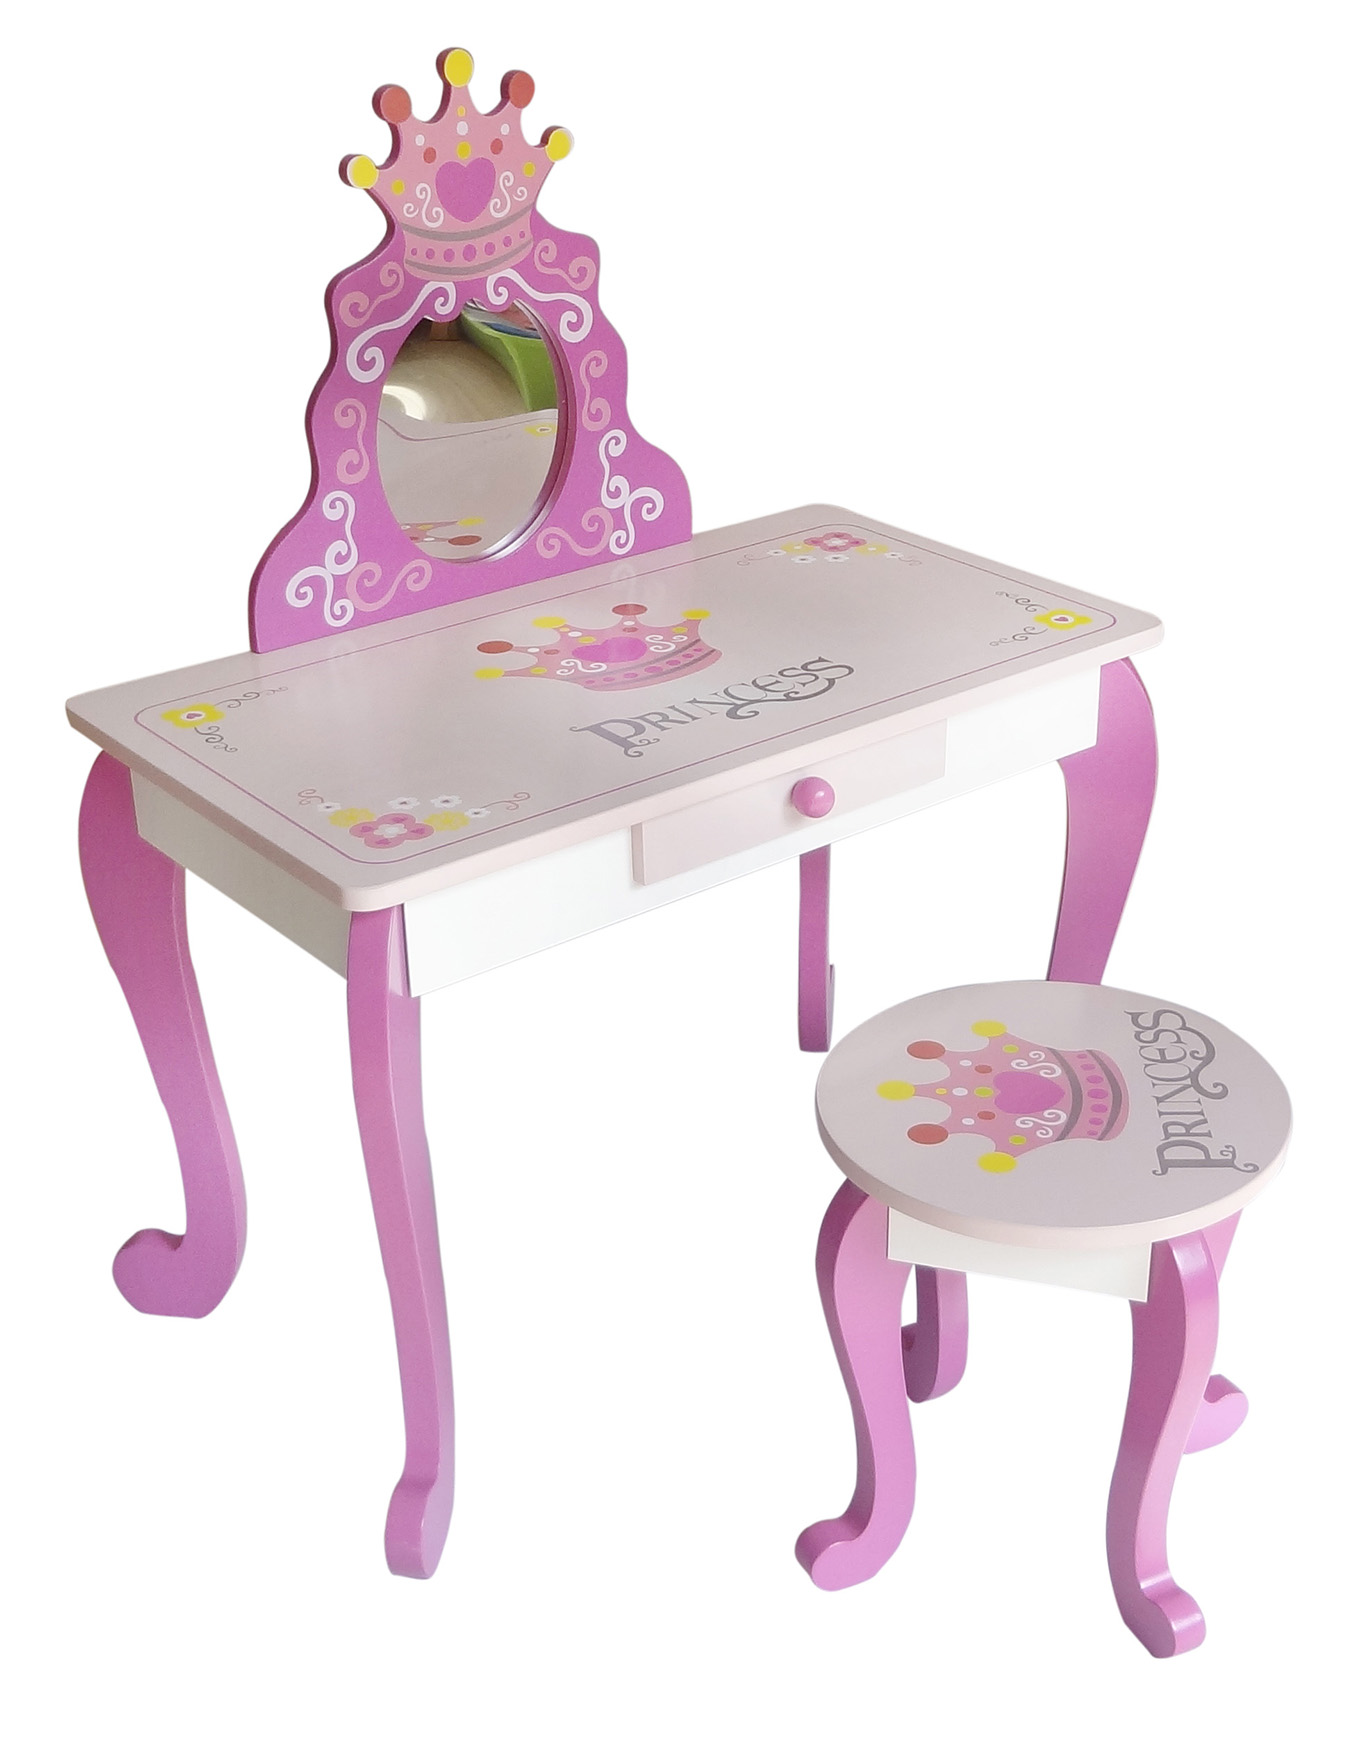 Little Girls Vanity Table And Chair Kiddi Style Princess Dressing Table And Stool Kiddy Products